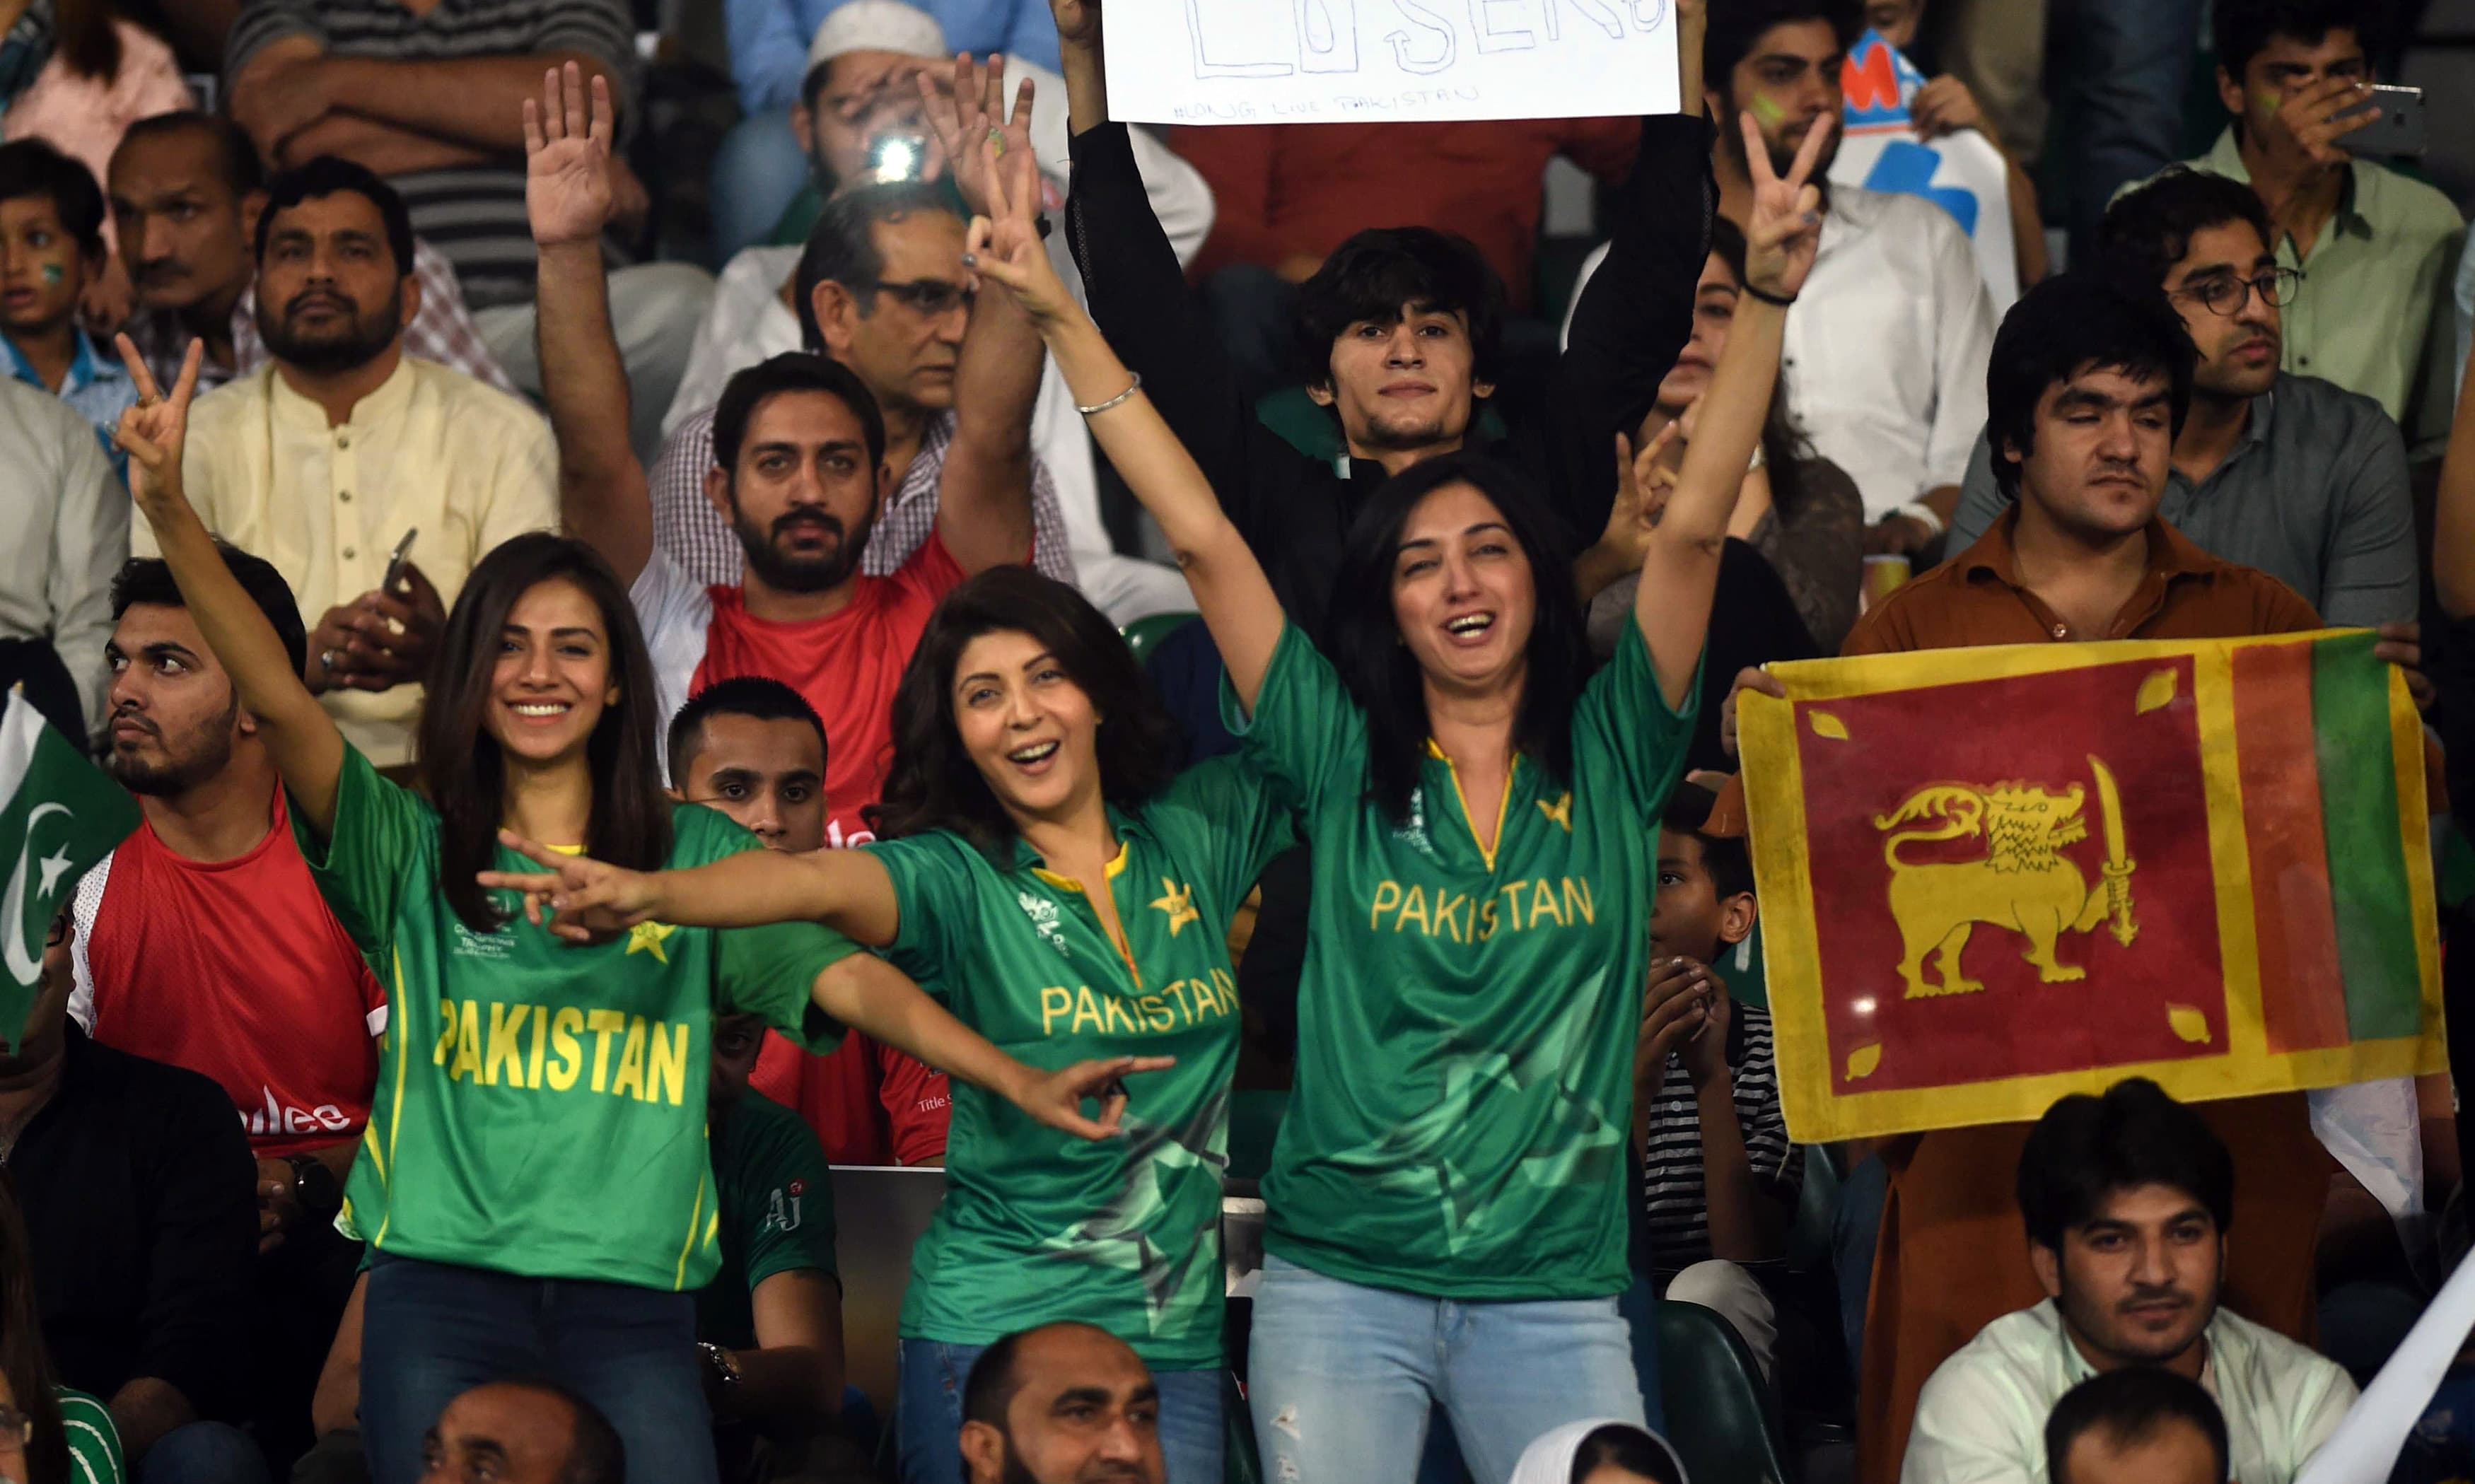 Celebrations all around as Sri Lanka return to play in Pakistan after 2009 attack